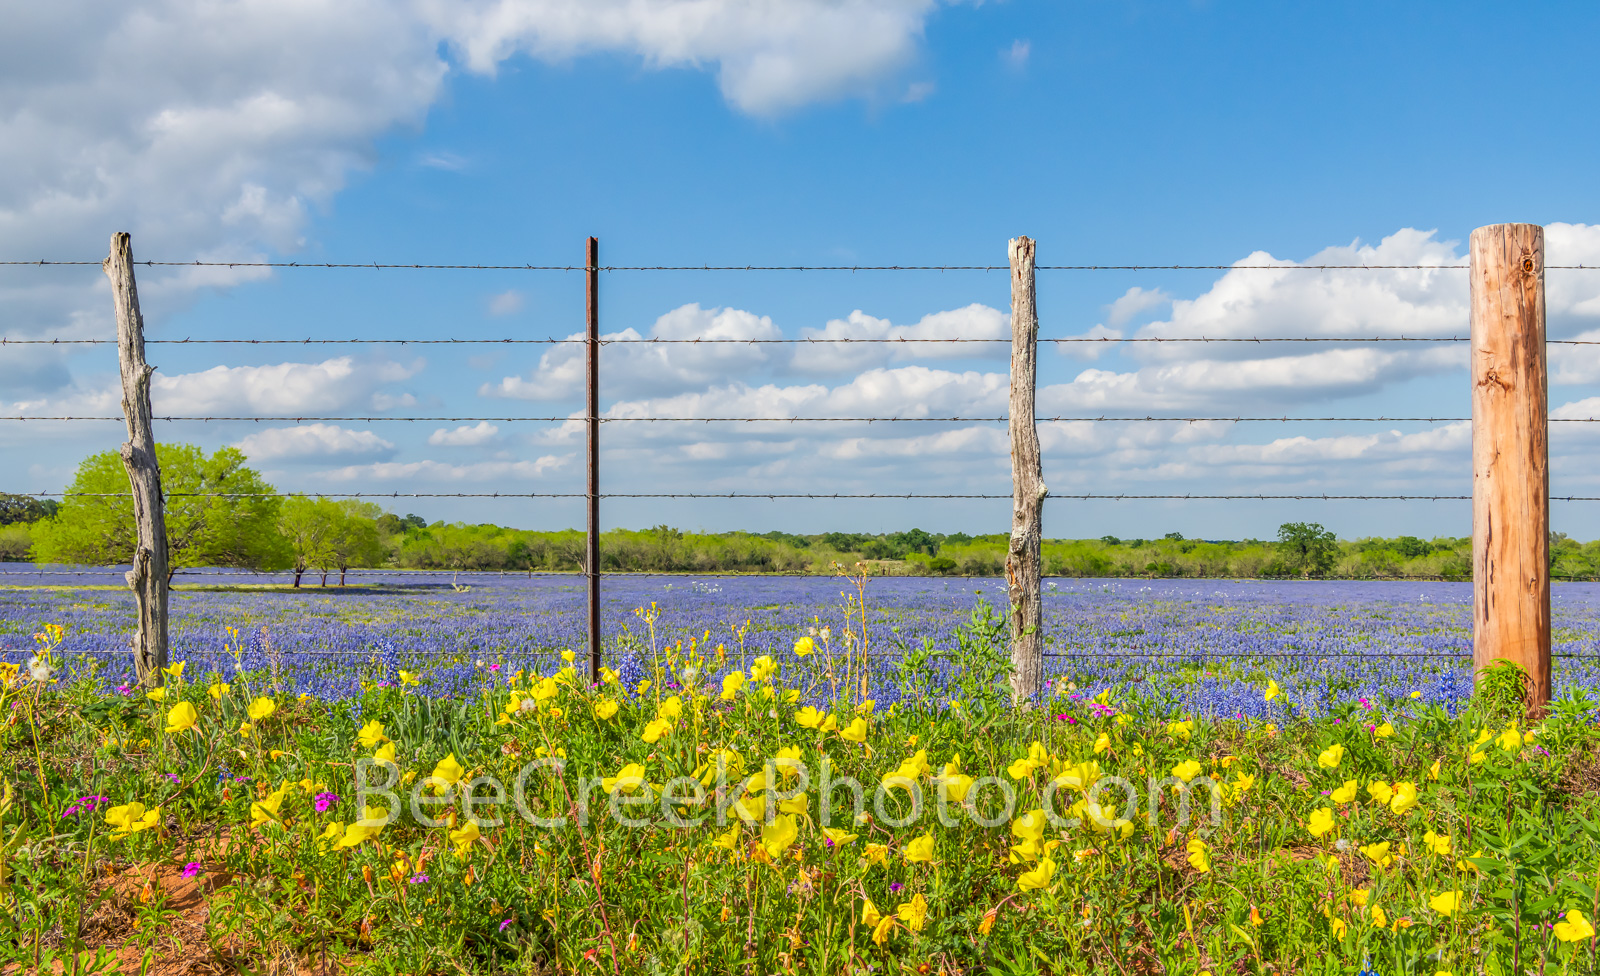 Wildflowers, barbwire, fence, post, bluebonnets, yellow, buttercup, texas wildflowers, texas scenery, texas wildflowers, iconic texas, images of texas, pictures of texas, pictures of bluebonnets, pict, photo